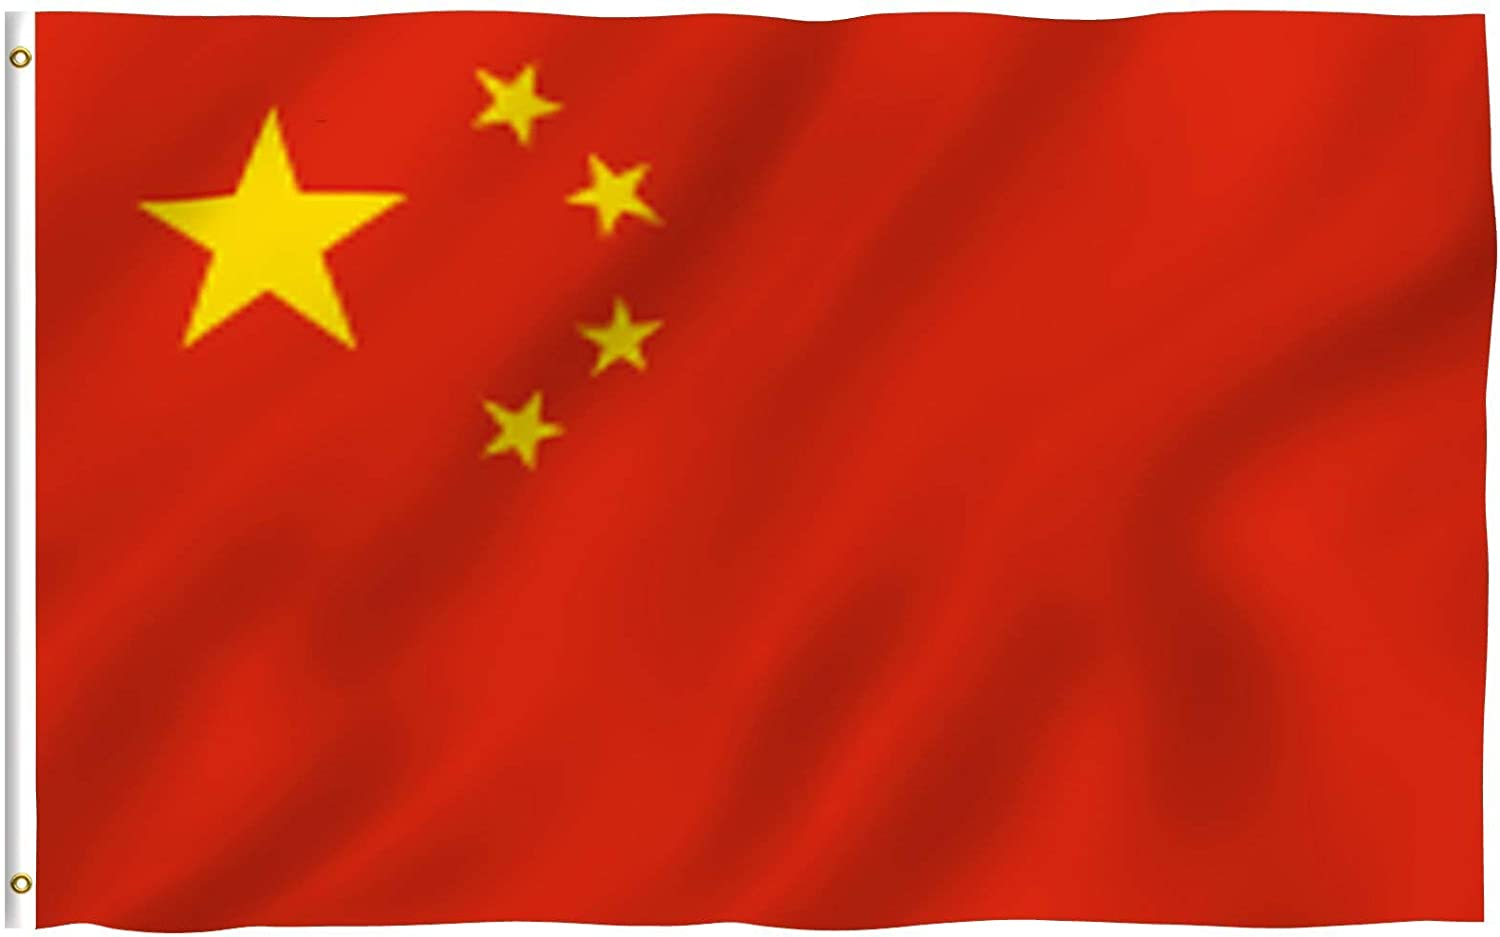 Anley Fly Breeze 3x5 Foot China Flag - Vivid Color and Fade Proof - Canvas Header and Double Stitched - Chinese National Flags Polyester with Brass Grommets 3 X 5 Ft